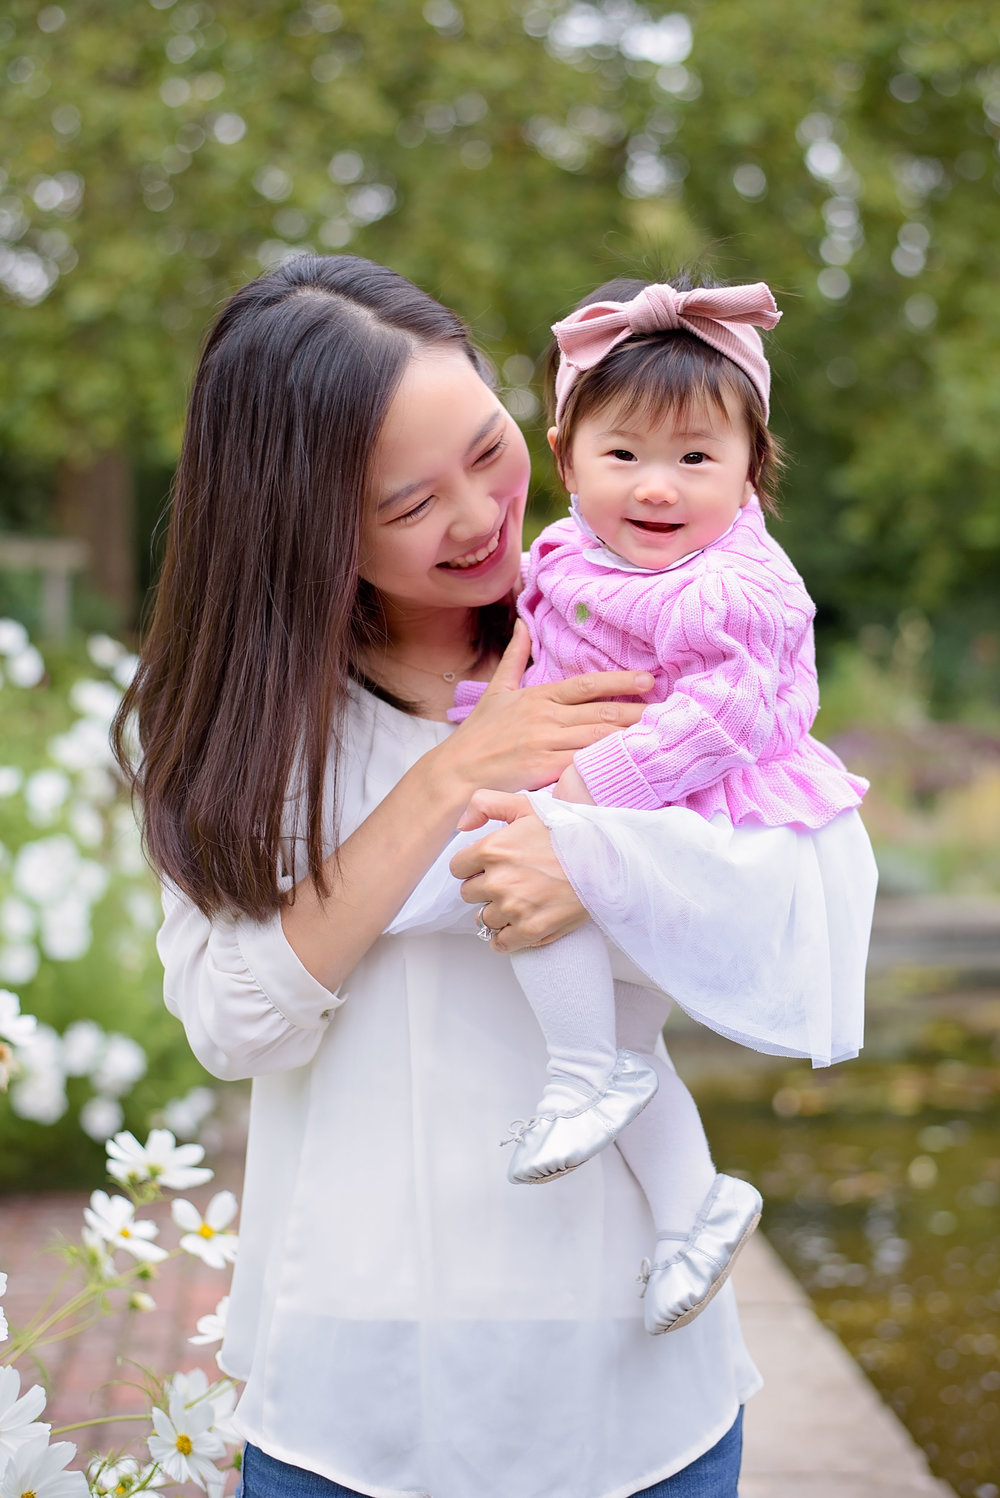 """We had a family photo shooting in Battersea Park last weekend. She took wonderful photos for our family and tried her best to catch every moment in our photo session. I'm very happy to have her and will definitely go back to her in the future again for another family photo shooting. Thank you Heather!"" - Yoonji, Battersea 